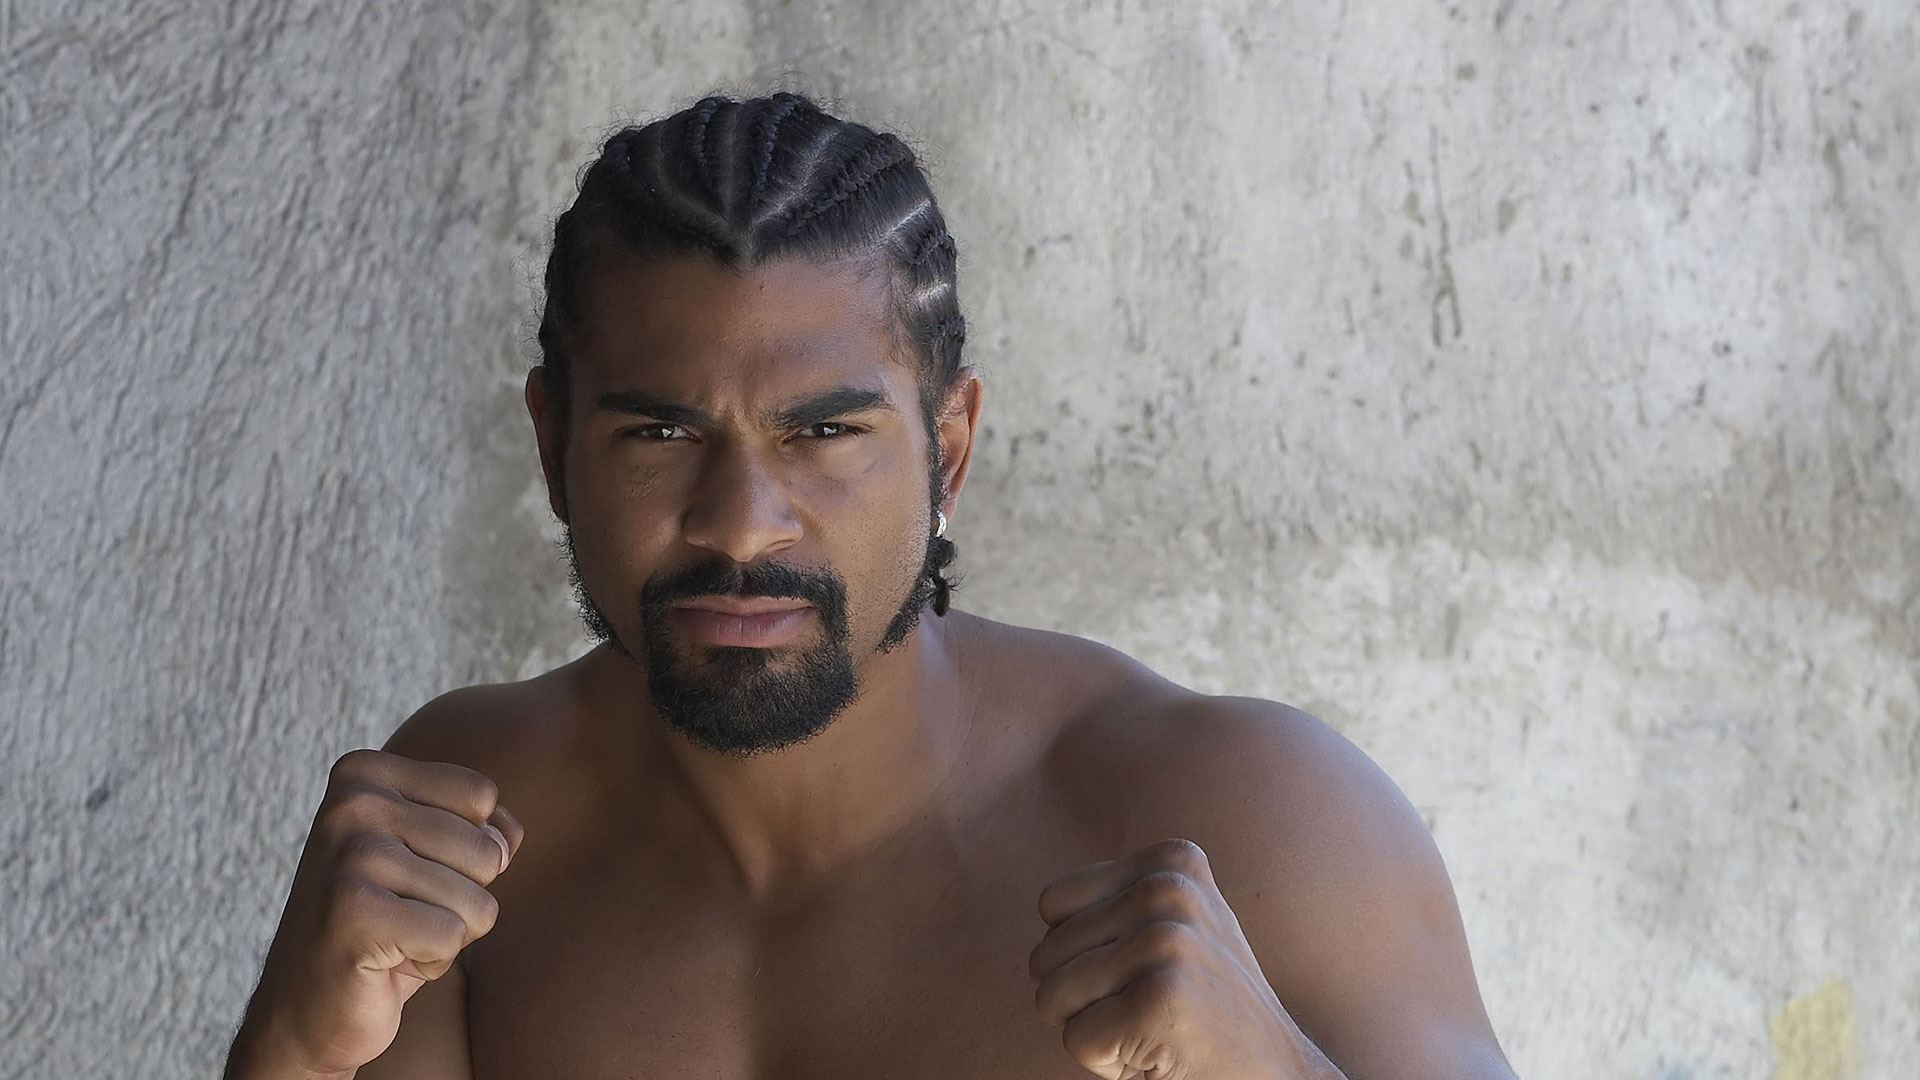 David Haye interview I dont want my son to be a boxer